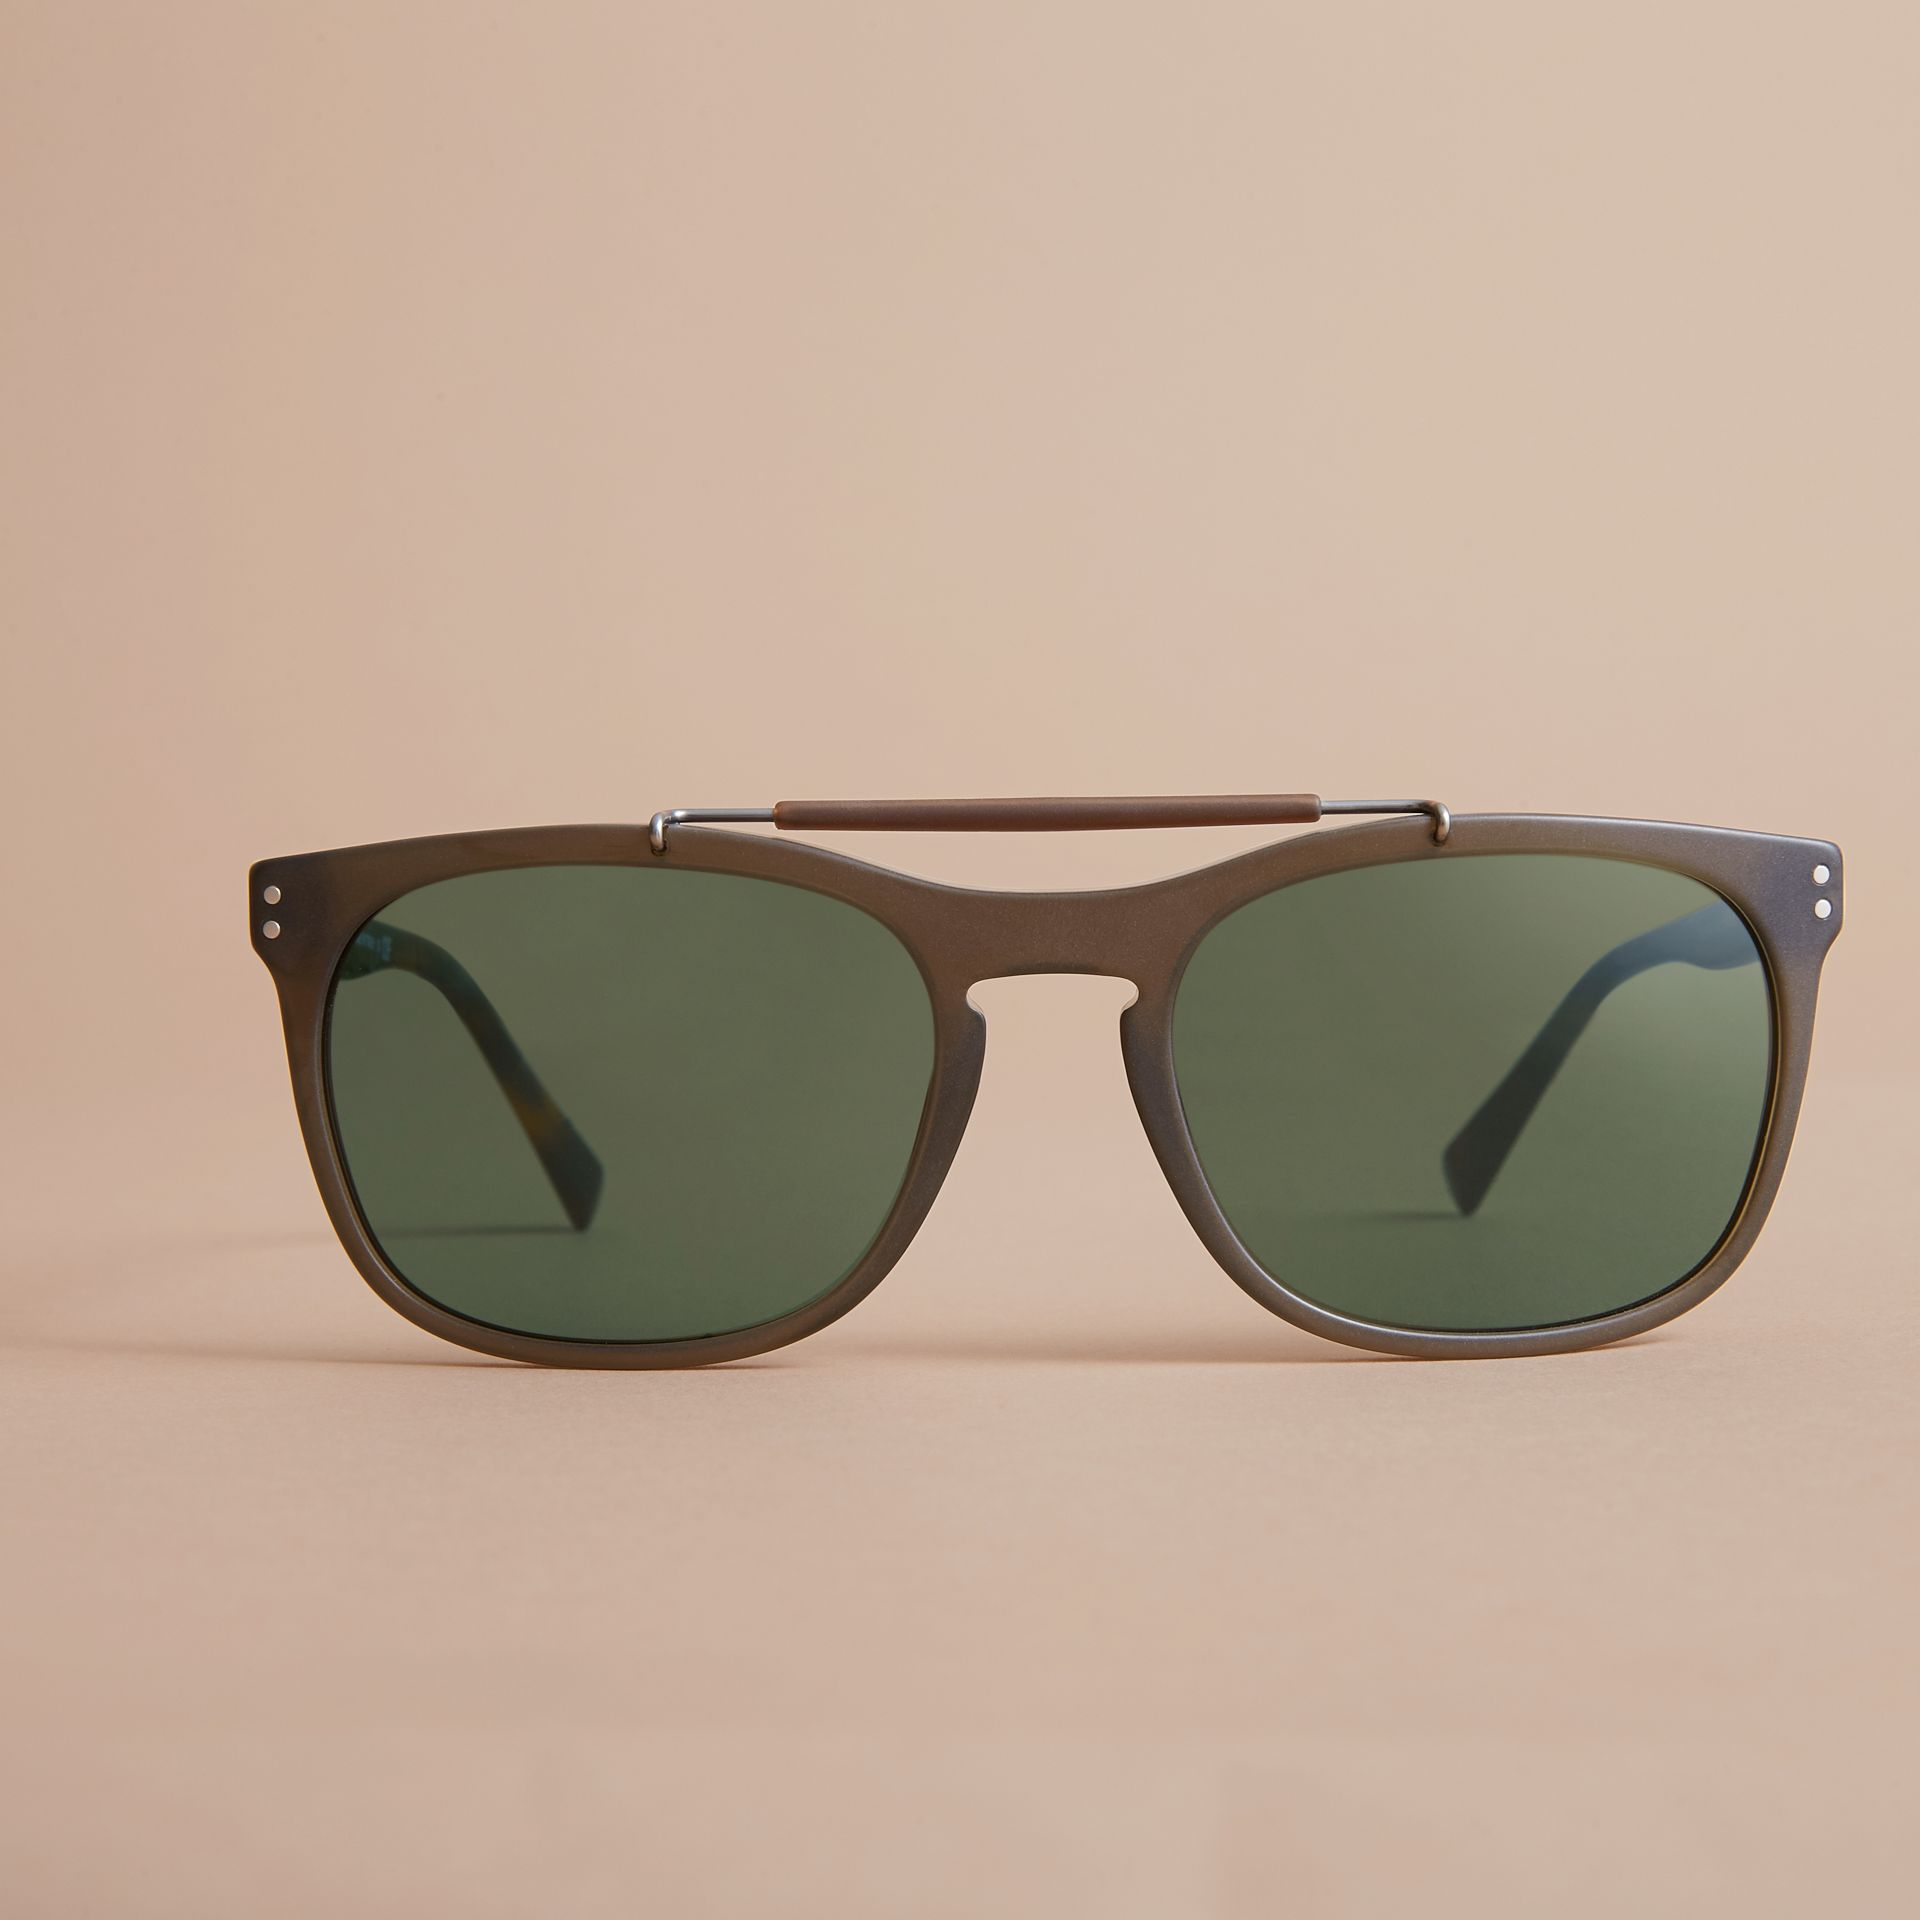 Top Bar Square Frame Sunglasses in Olive - Men | Burberry - gallery image 2